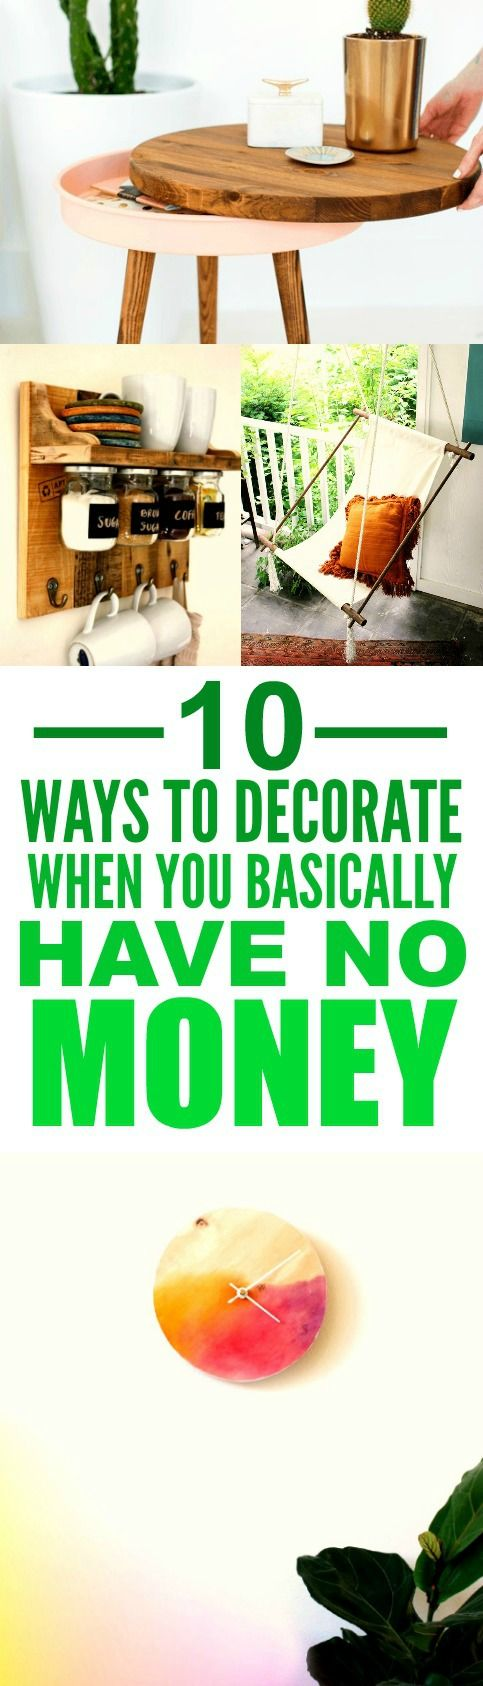 Cheap Home Decor And Furniture nicole hill gerulat today 10 Cheap Home Decor Ideas That Will Make Your Home Look Expensive